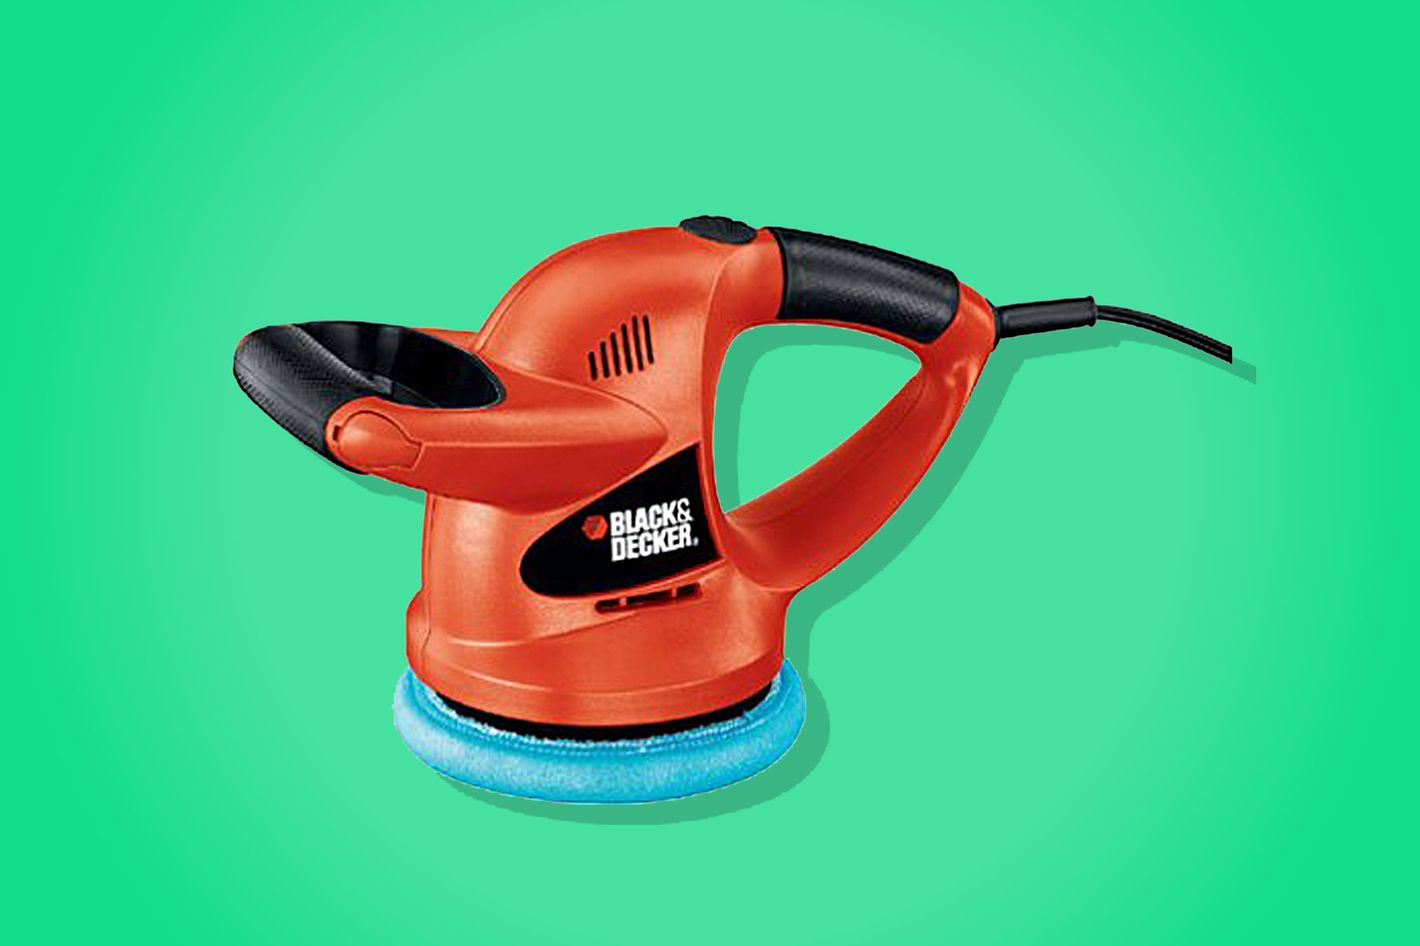 Black & Decker WP900 Random Orbit Waxer/Polisher